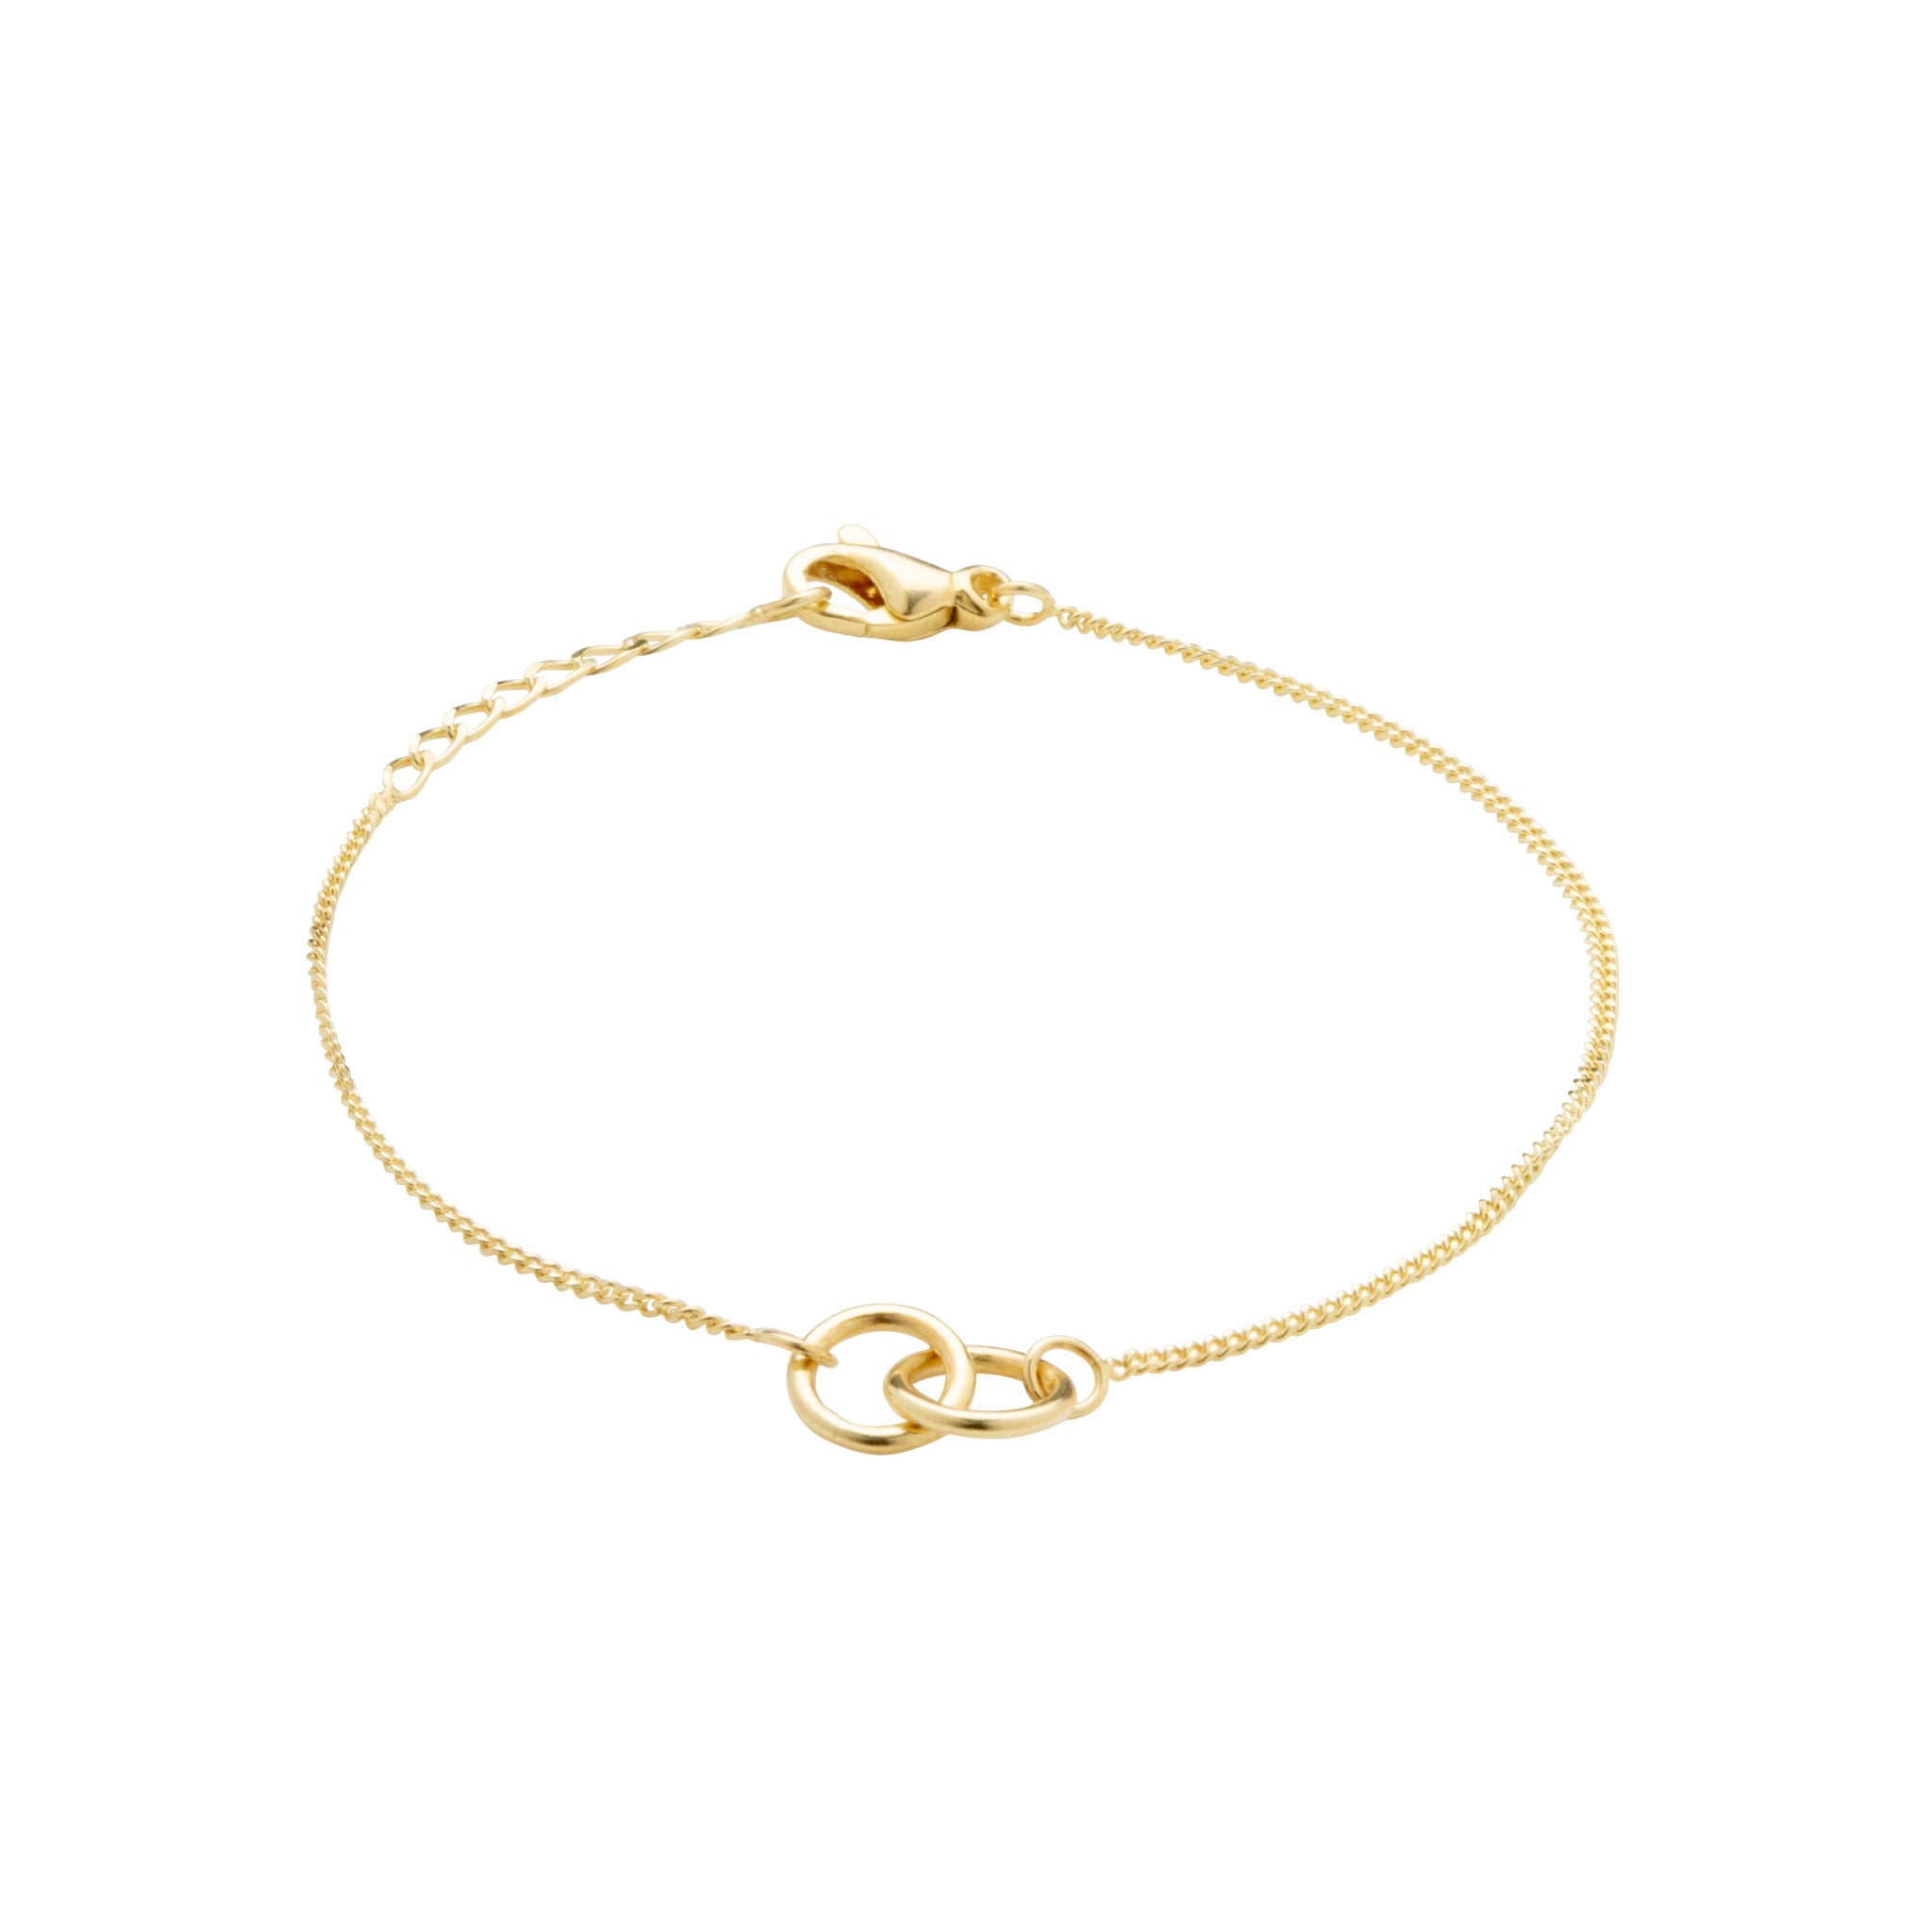 Eternal Connection 14KT Solid Gold Bracelet